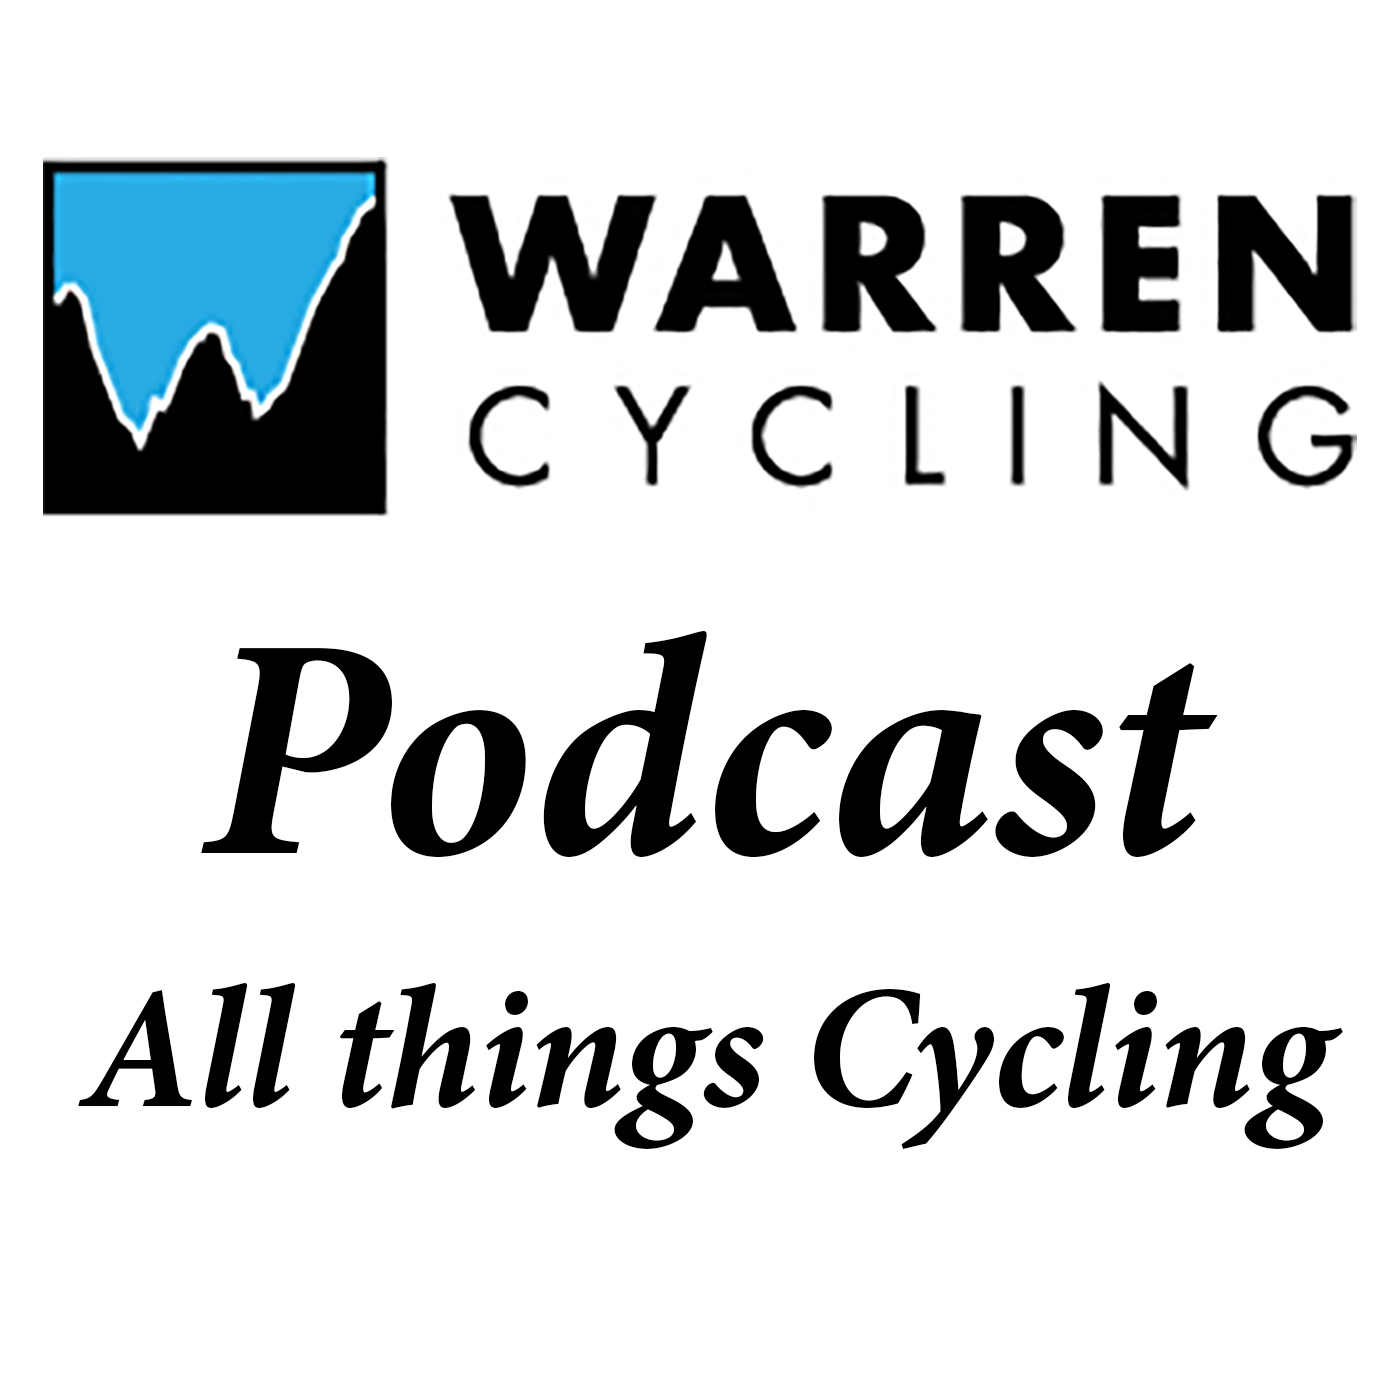 Warren Cycling Podcast Episode 235: The latest in Cycling 2021 show art